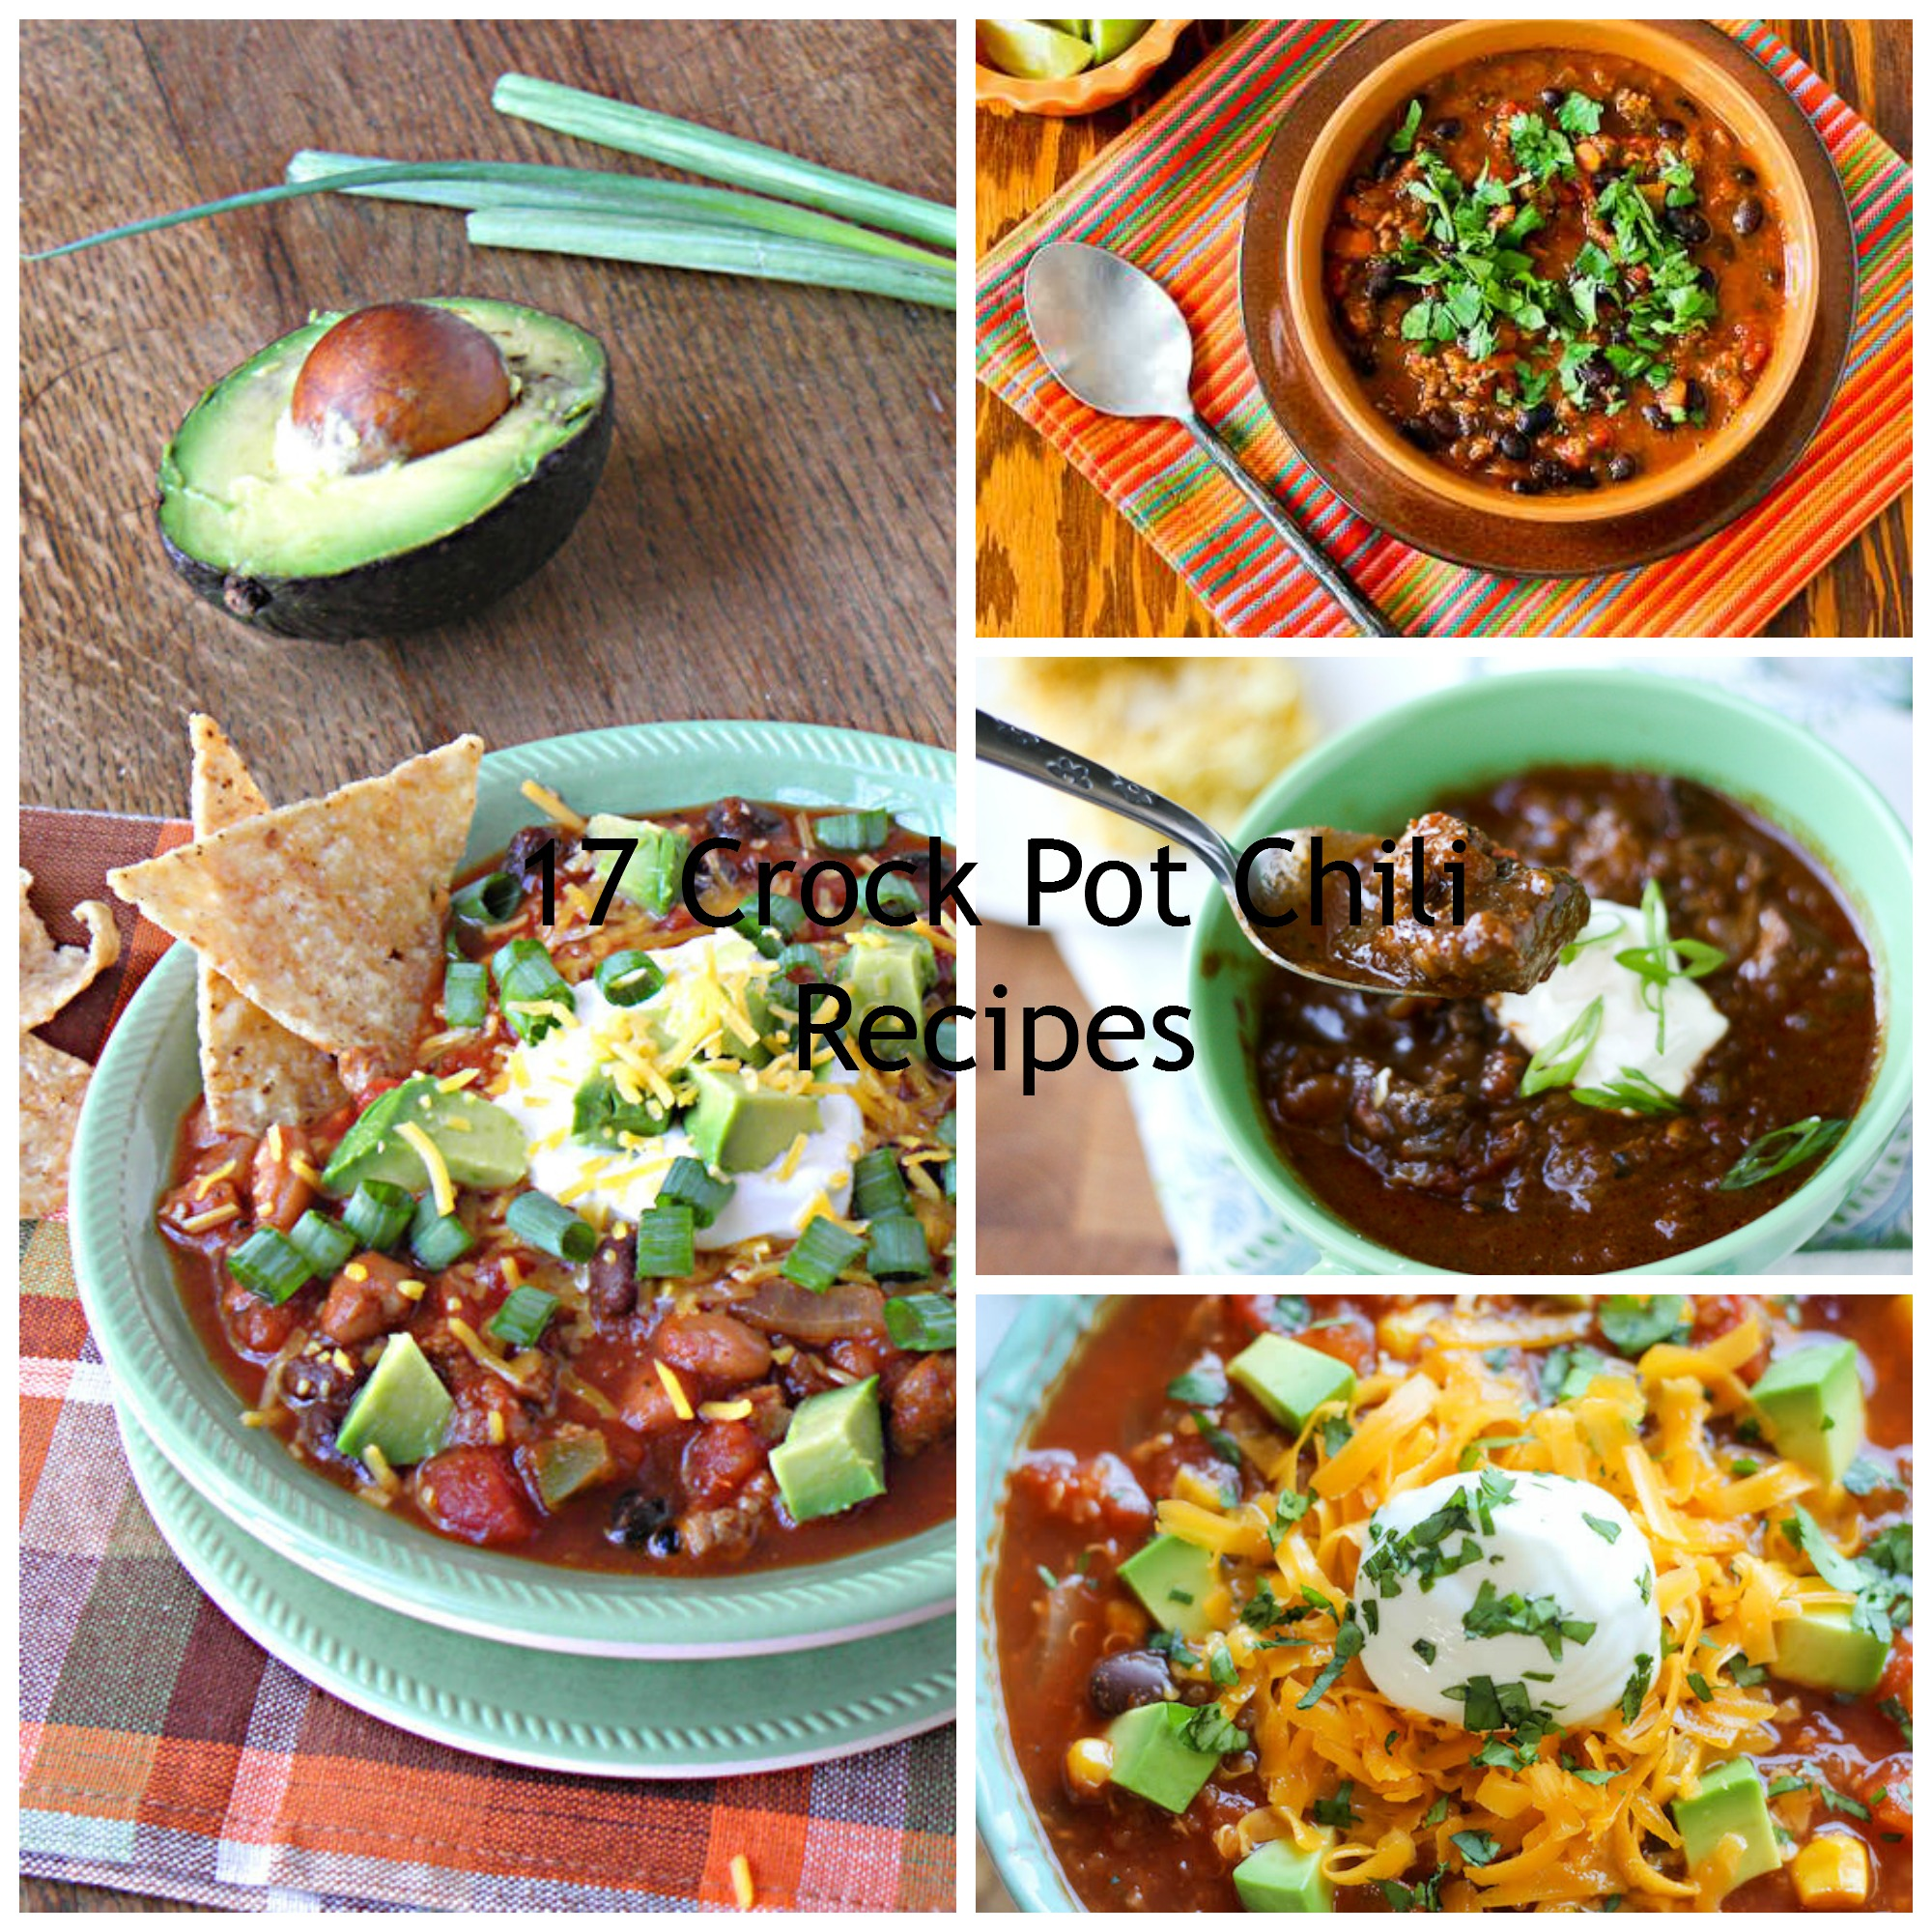 17crockpotchilirecipes